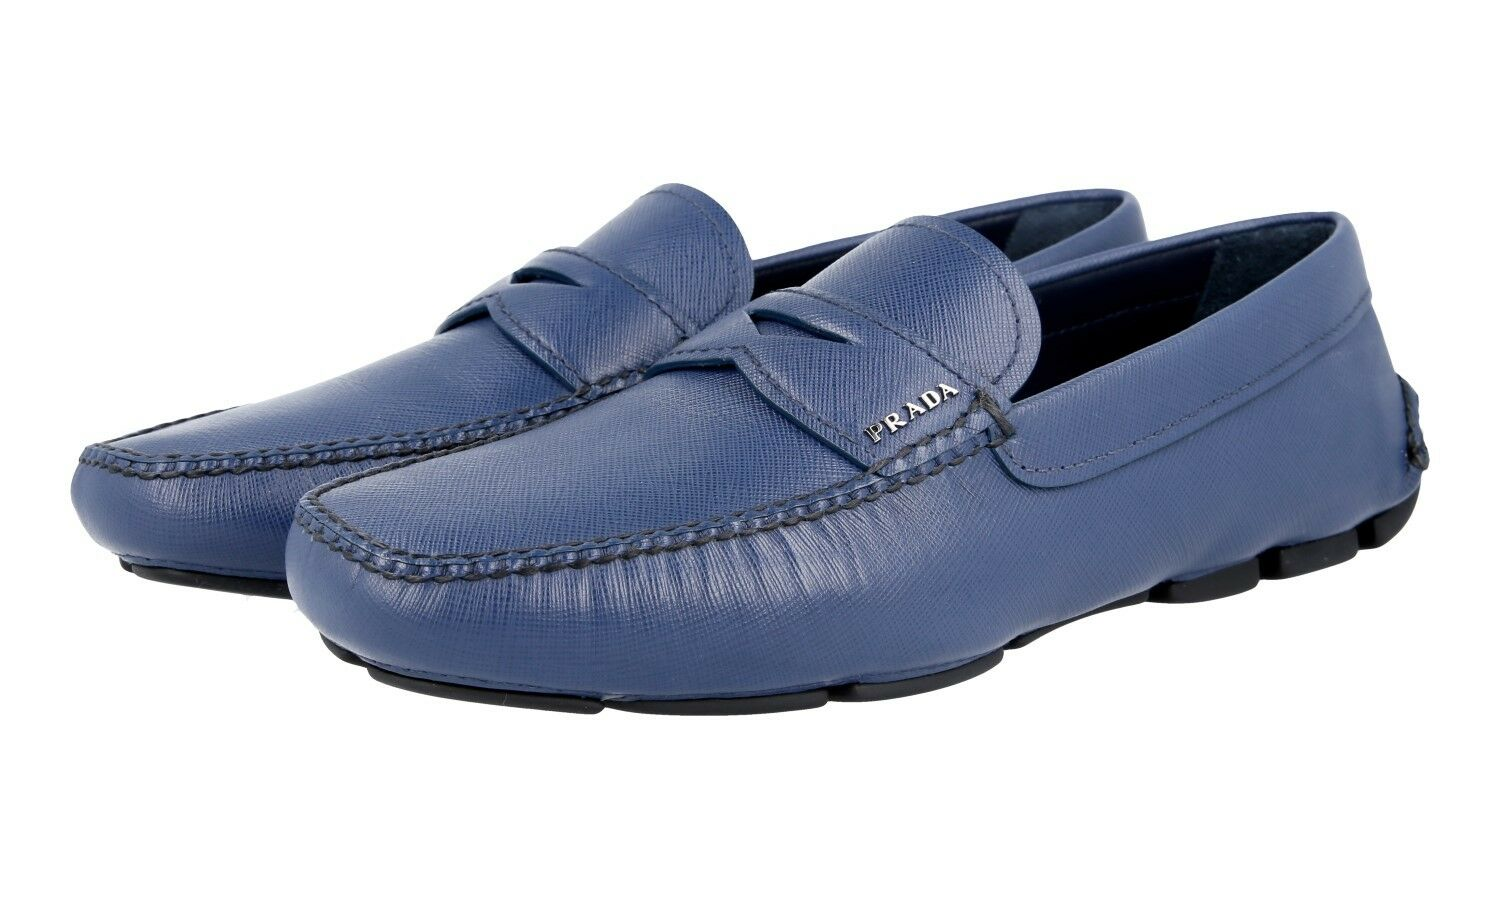 AUTH PRADA SAFFIANO PENNY LOAFER SHOES 2DD001 blueETTE NEW 9 43 43,5